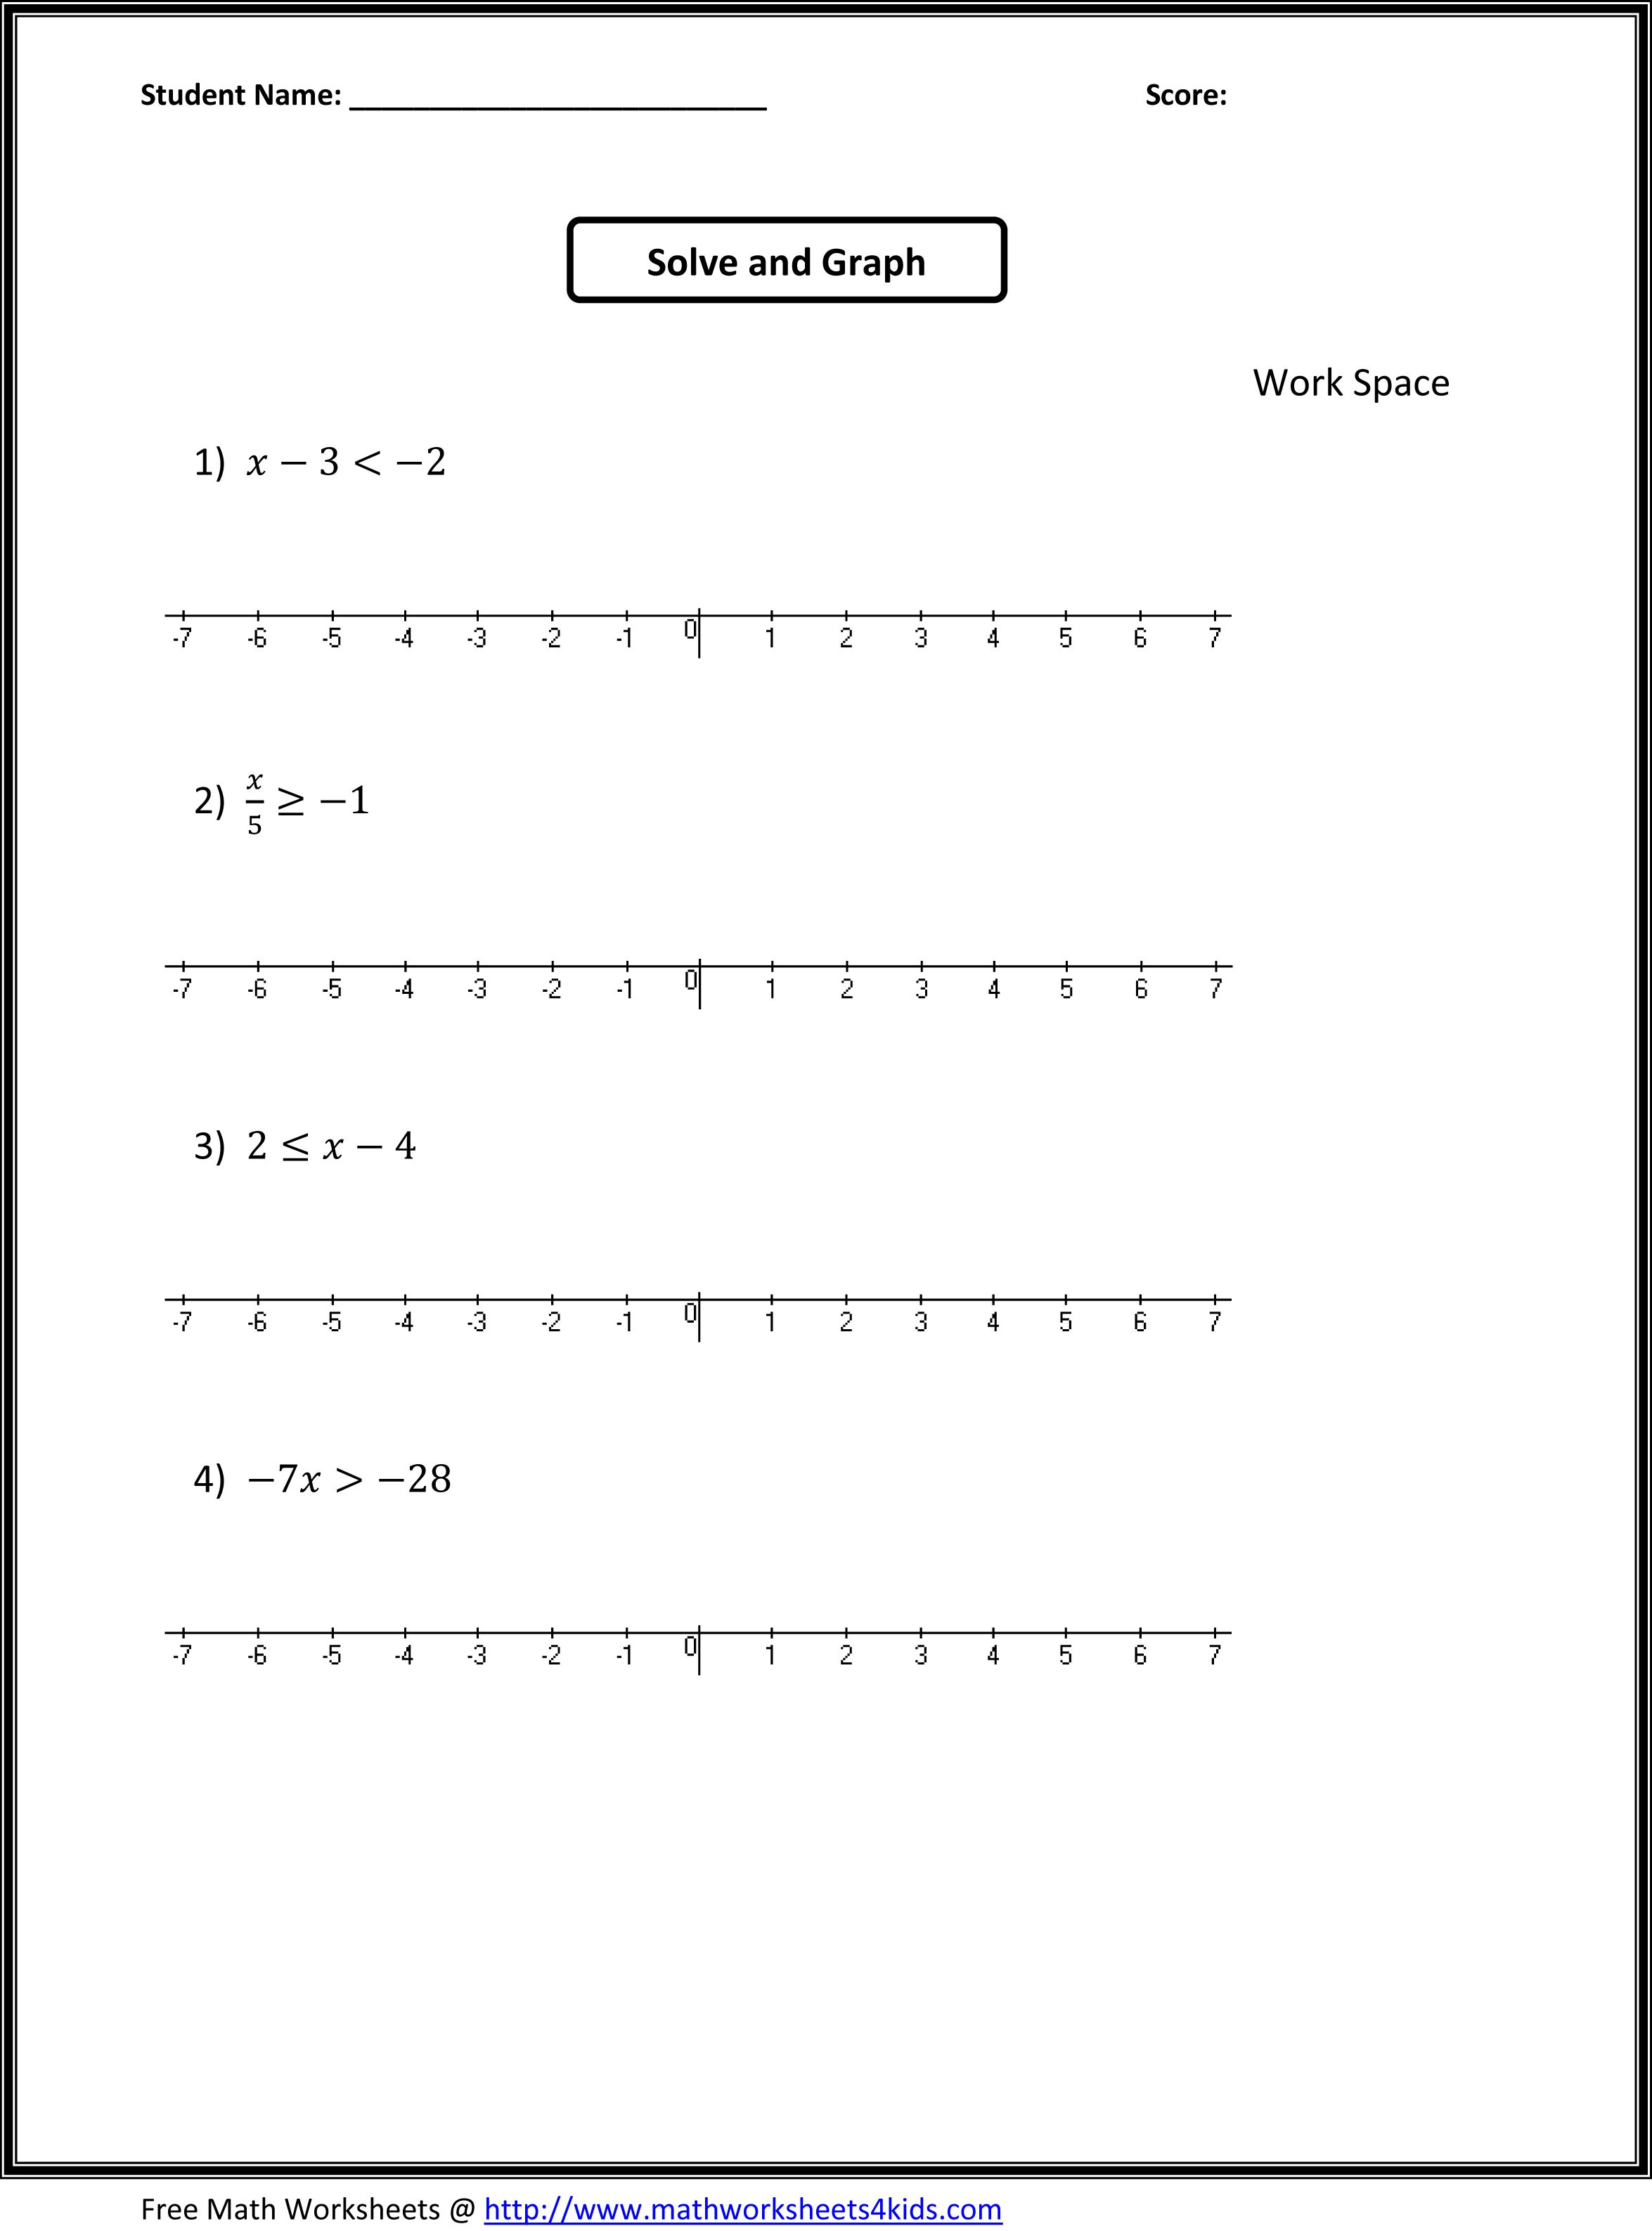 Printables Two Step Inequalities Worksheet solving two step inequalities worksheet fireyourmentor free worksheets 1000 images about on pinterest word problems 7th grade